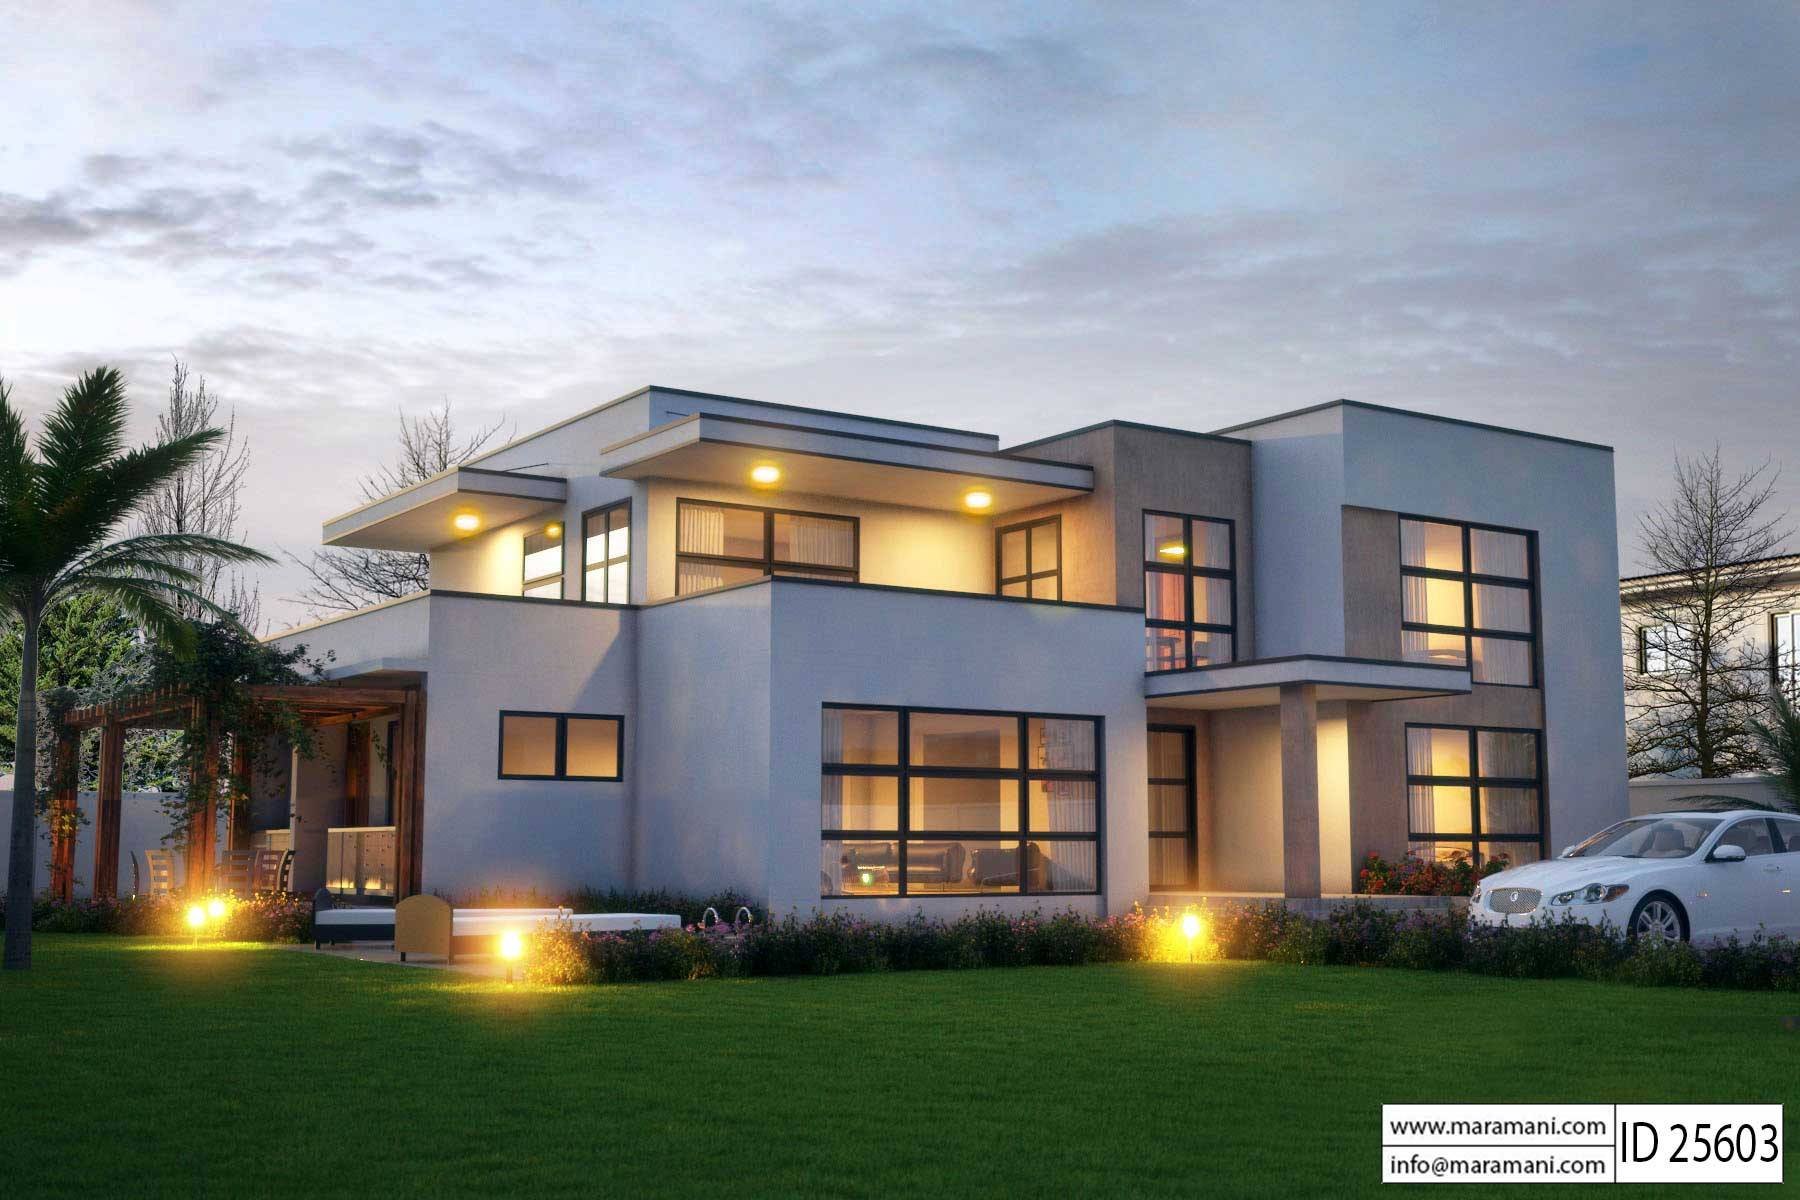 Modern 5 bedroom house design id 25603 floor plans by for House and home bedrooms